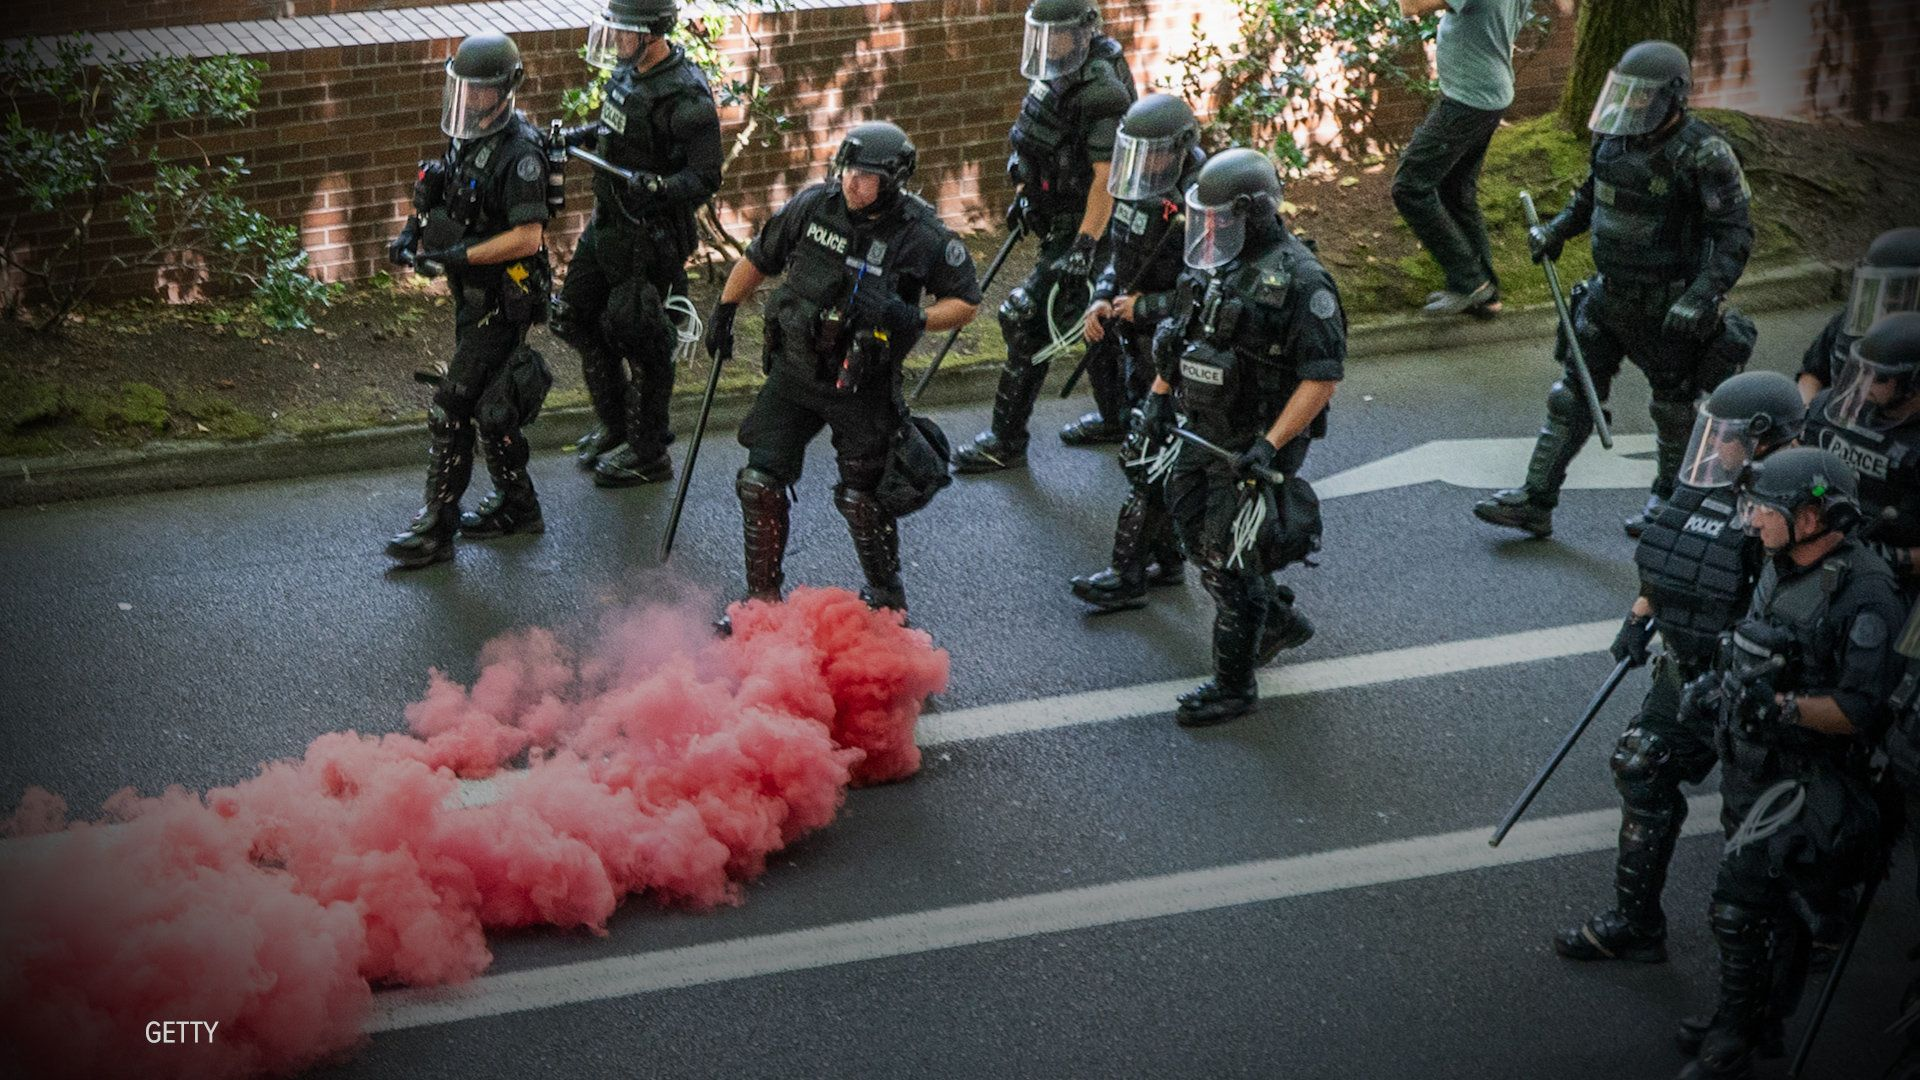 Portland Police are being investigated after the alt-right rally last weekend